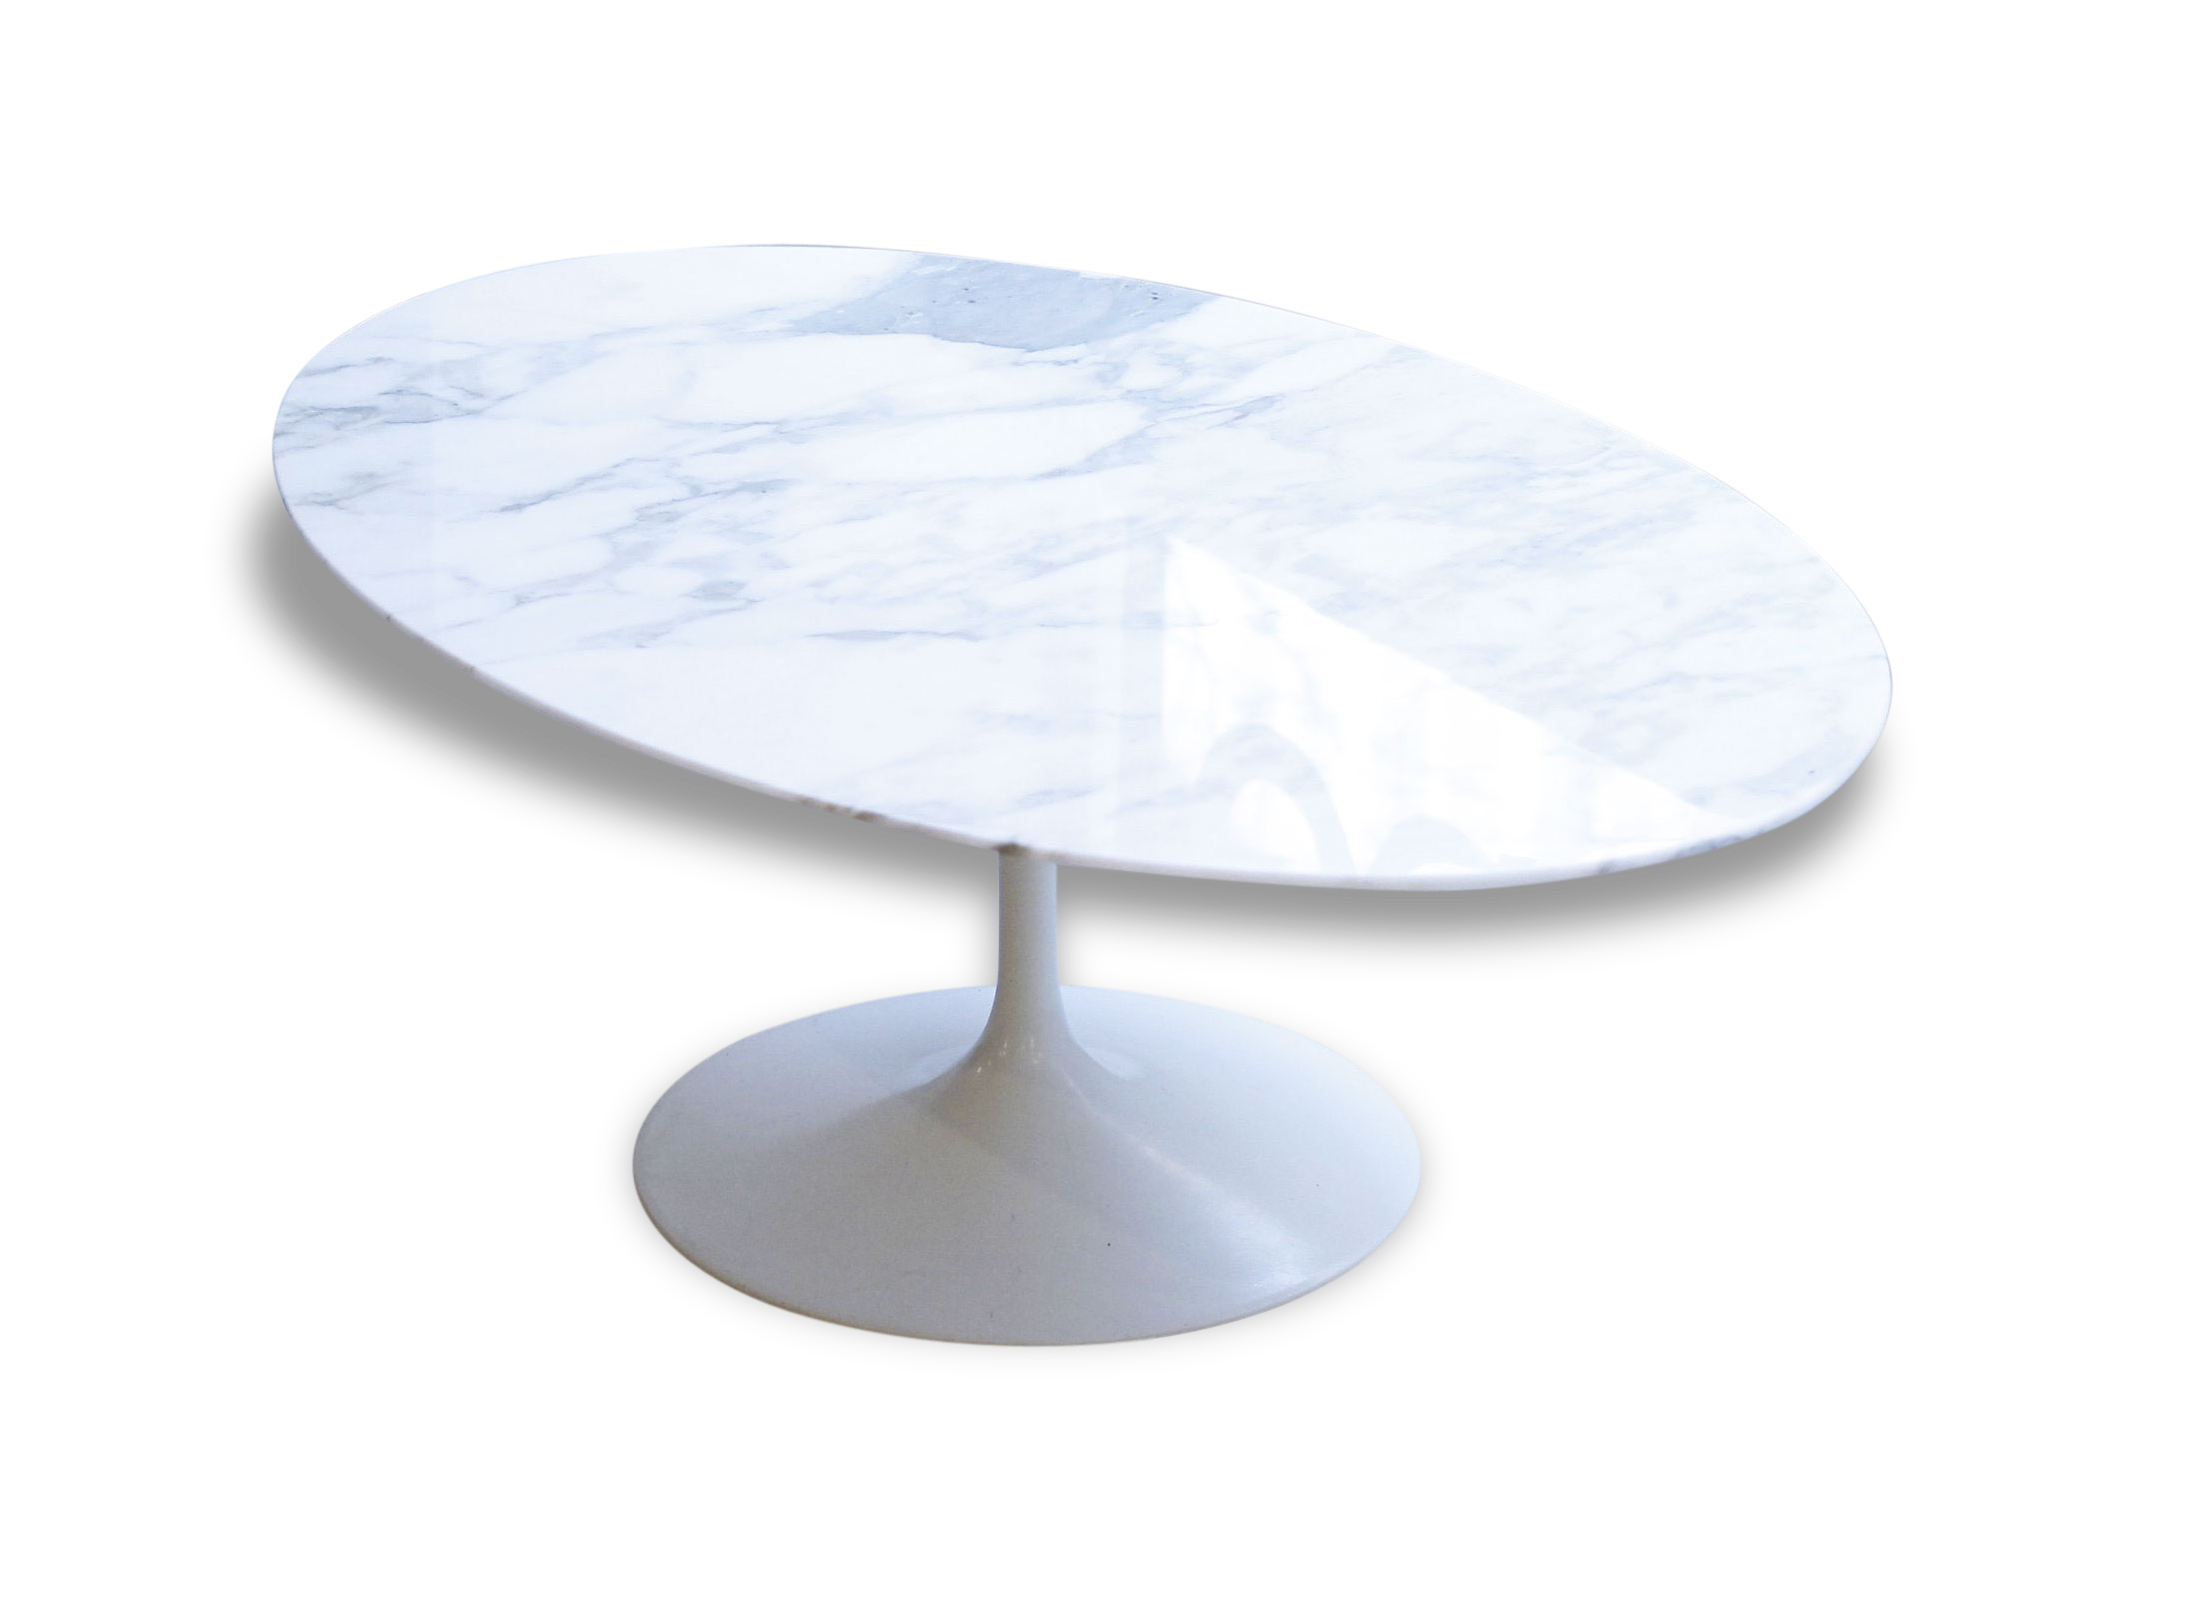 table knoll ovale marbre awesome table marbre blanc table basse marbre blanc table basse. Black Bedroom Furniture Sets. Home Design Ideas